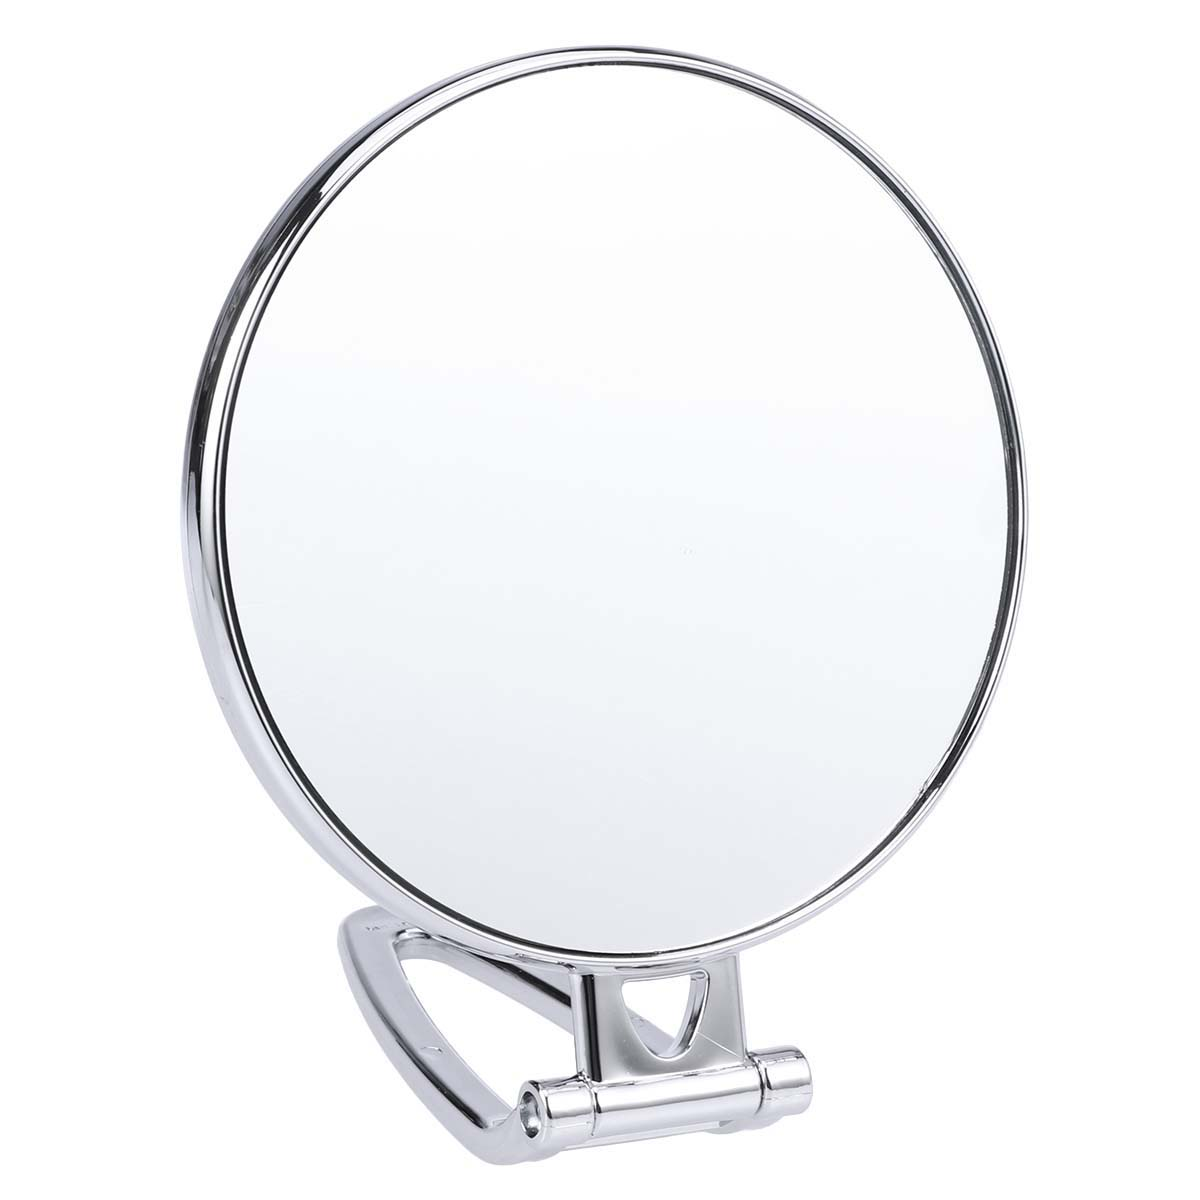 Frap New Arrival Makeup Mirror Professional Vanity Mirror Bathroom Accessories 180 Rotating Free Magnifier F6206 F6208 Bathroom Hardware